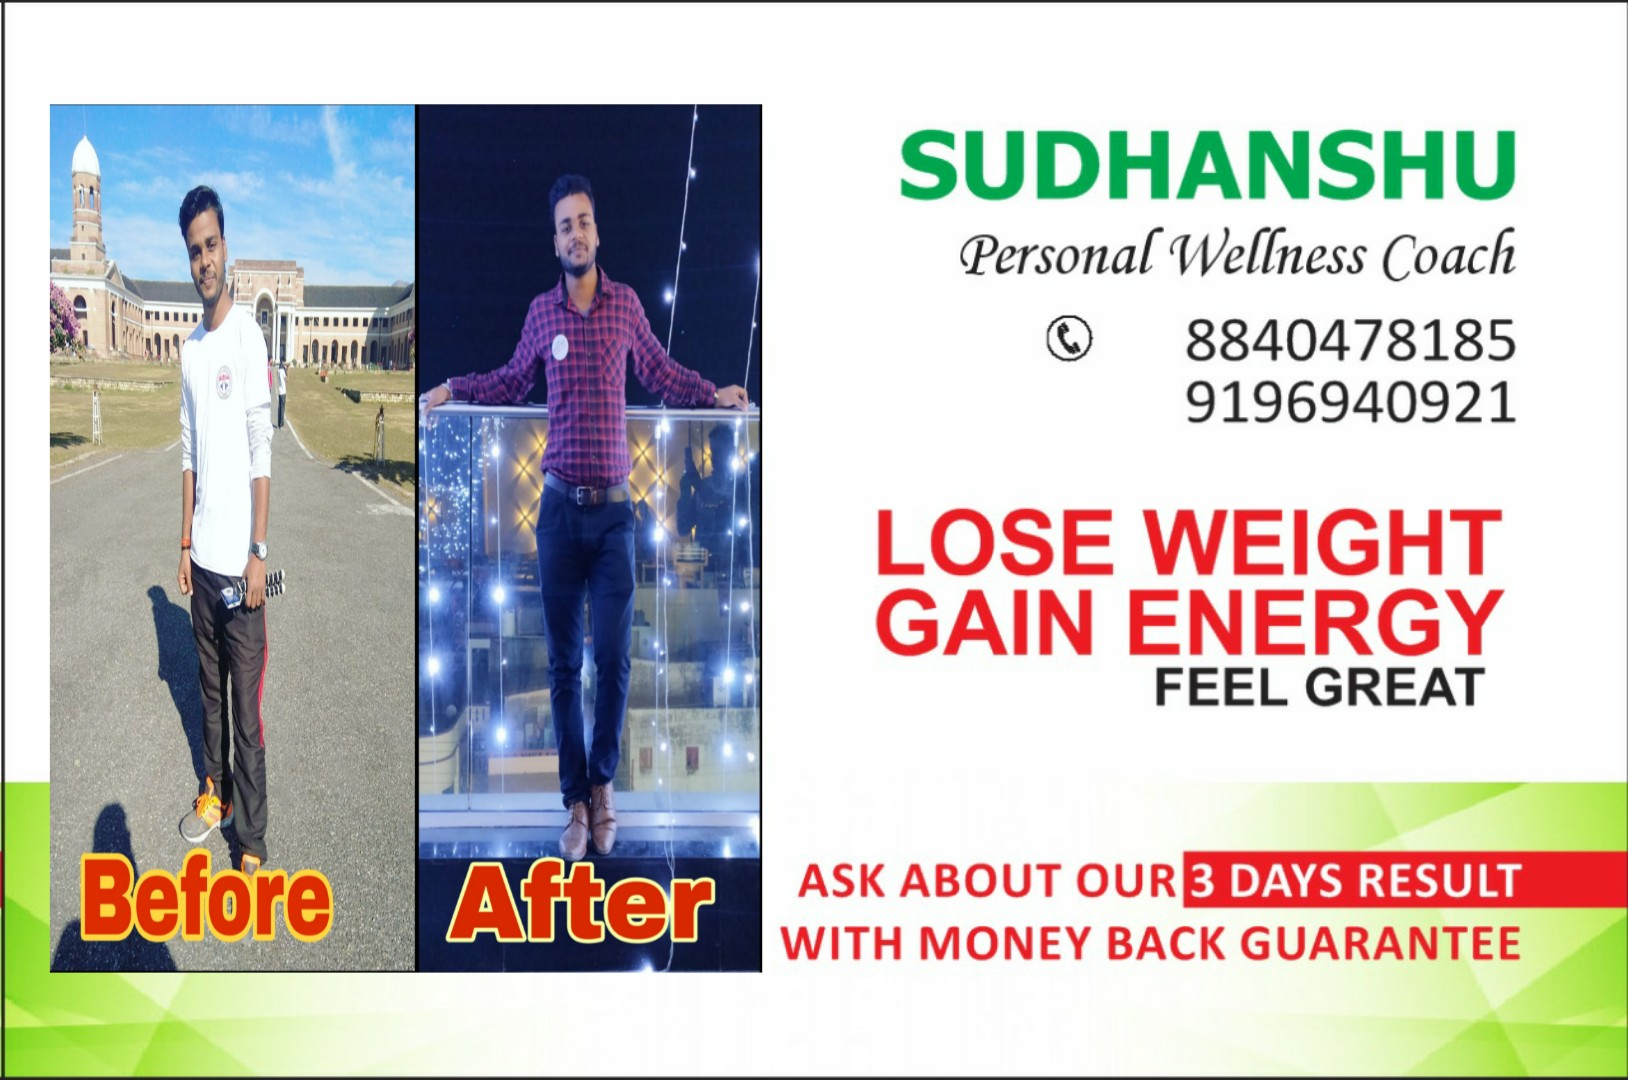 sudhanshu-herballife-health-and-wellness-coach-popular-in-india